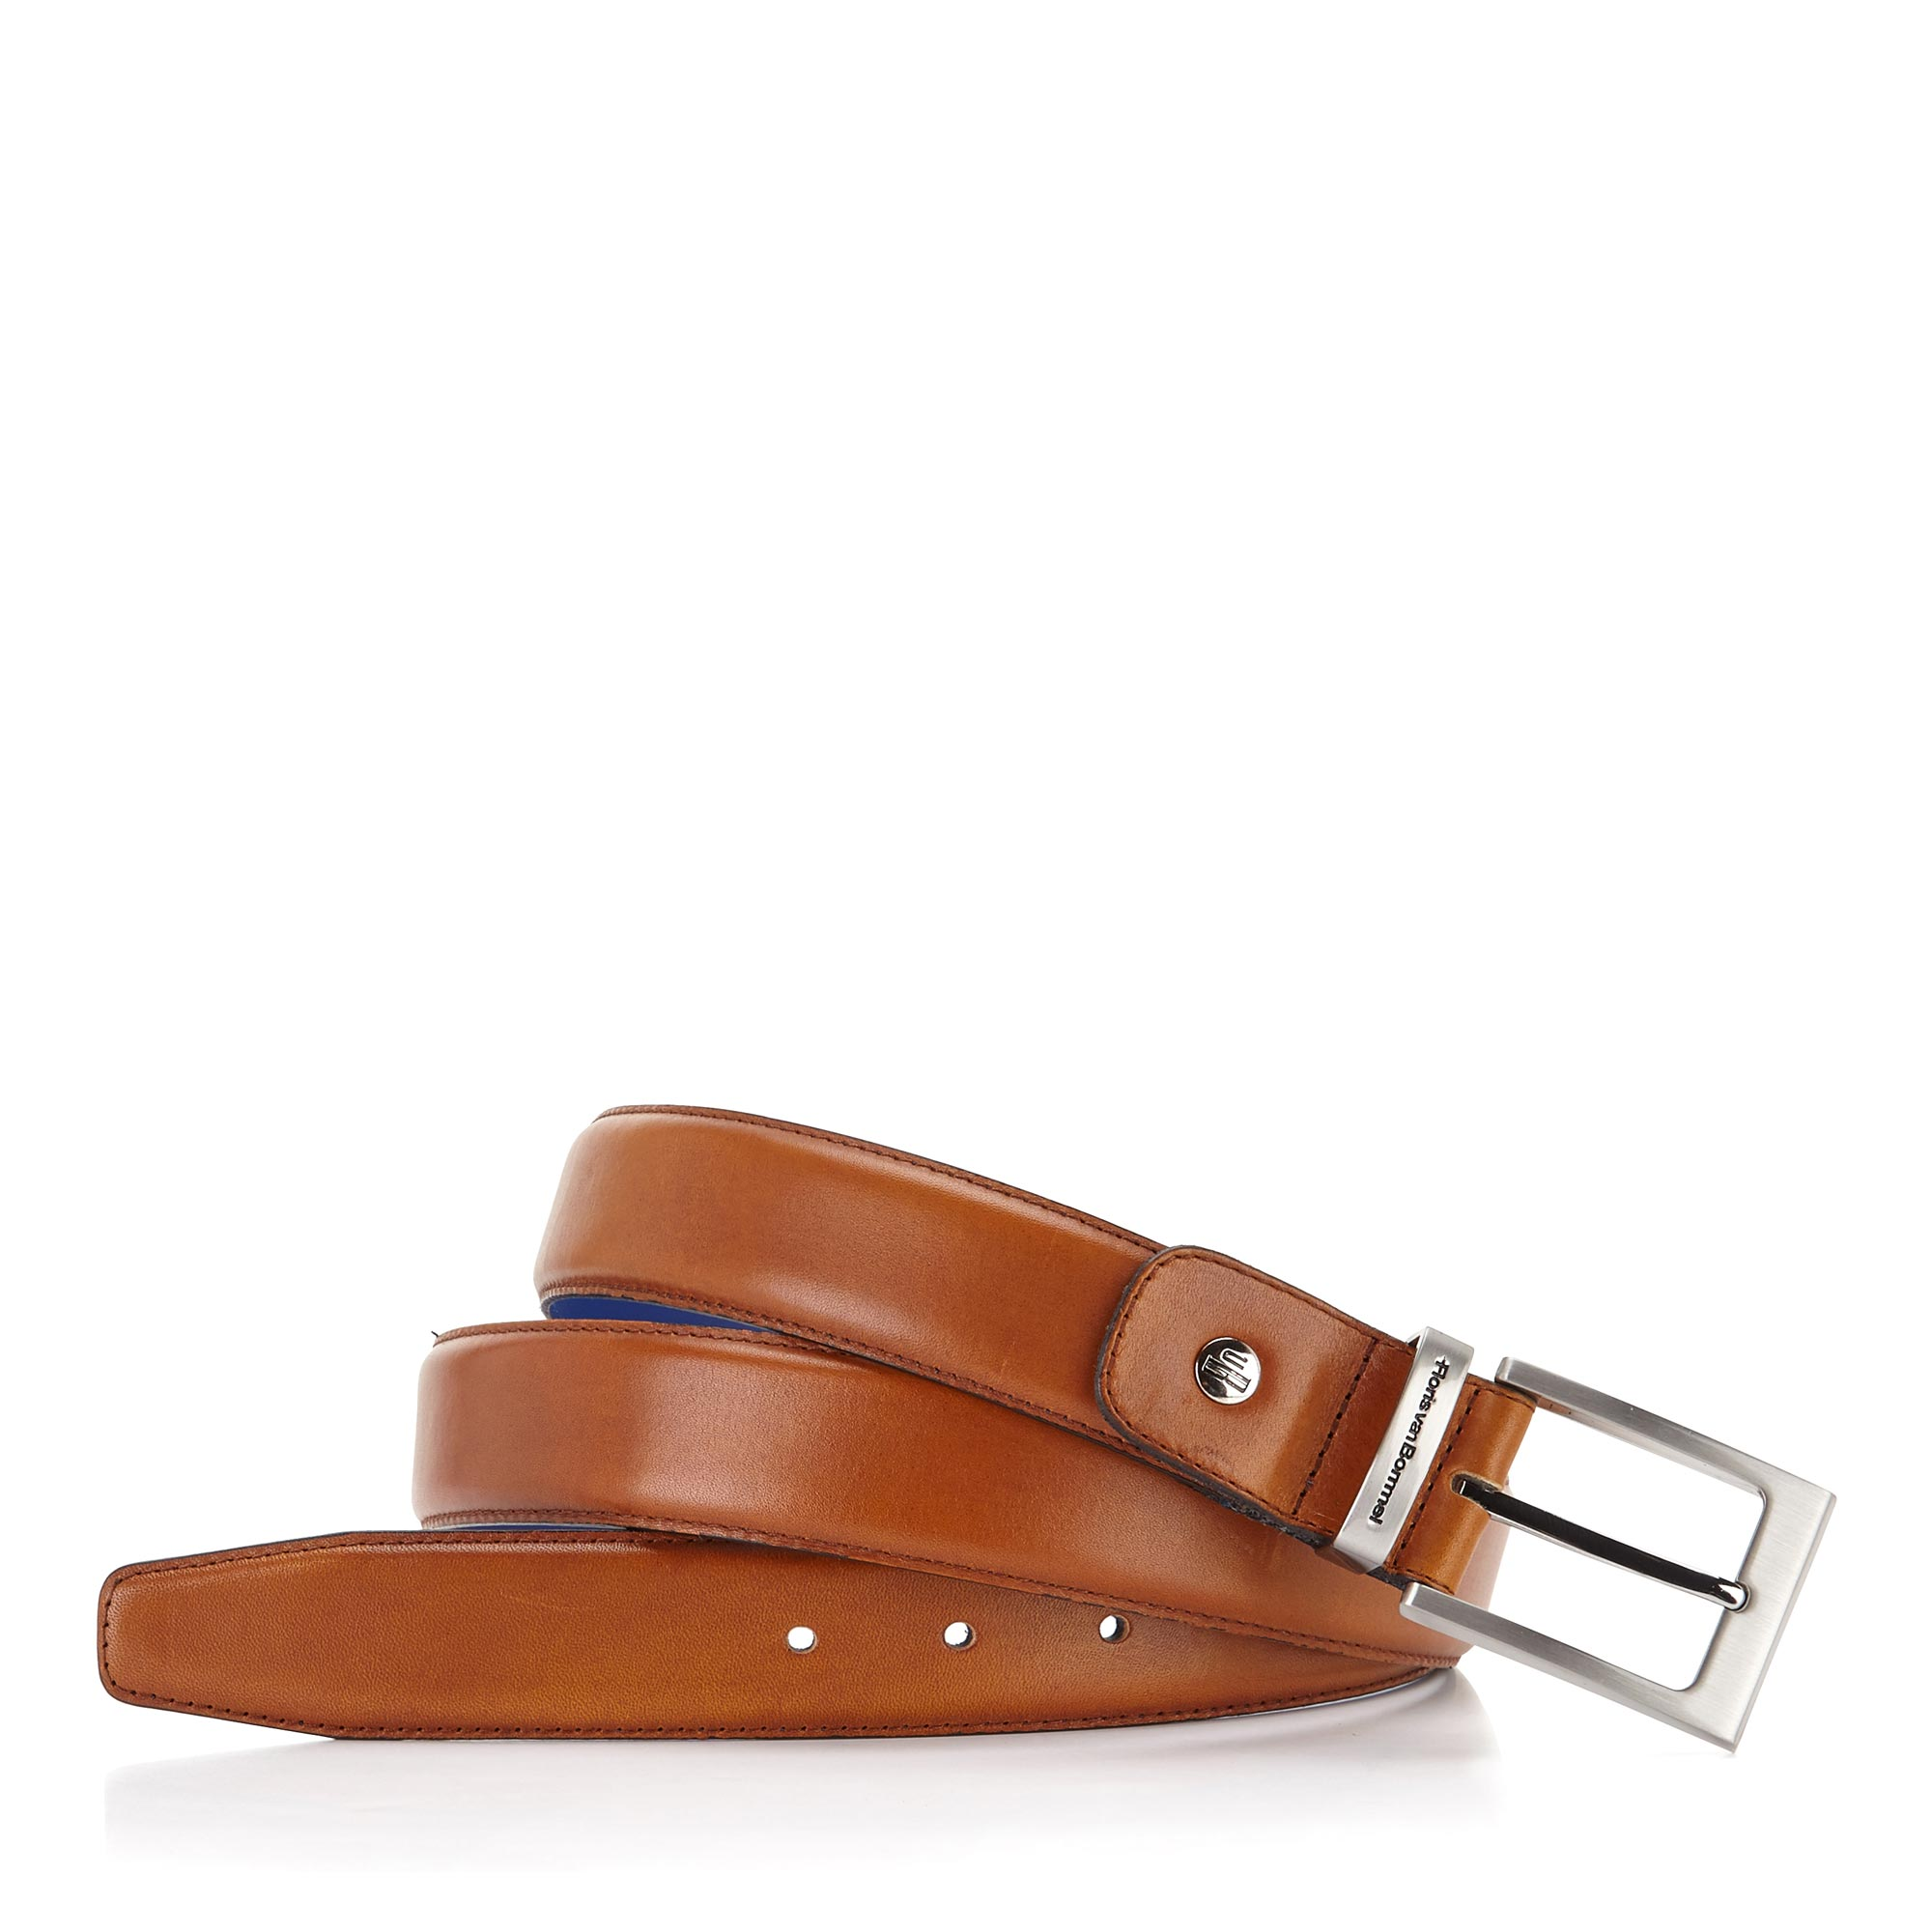 75046/02 - Floris van Bommel cognac leather men's belt